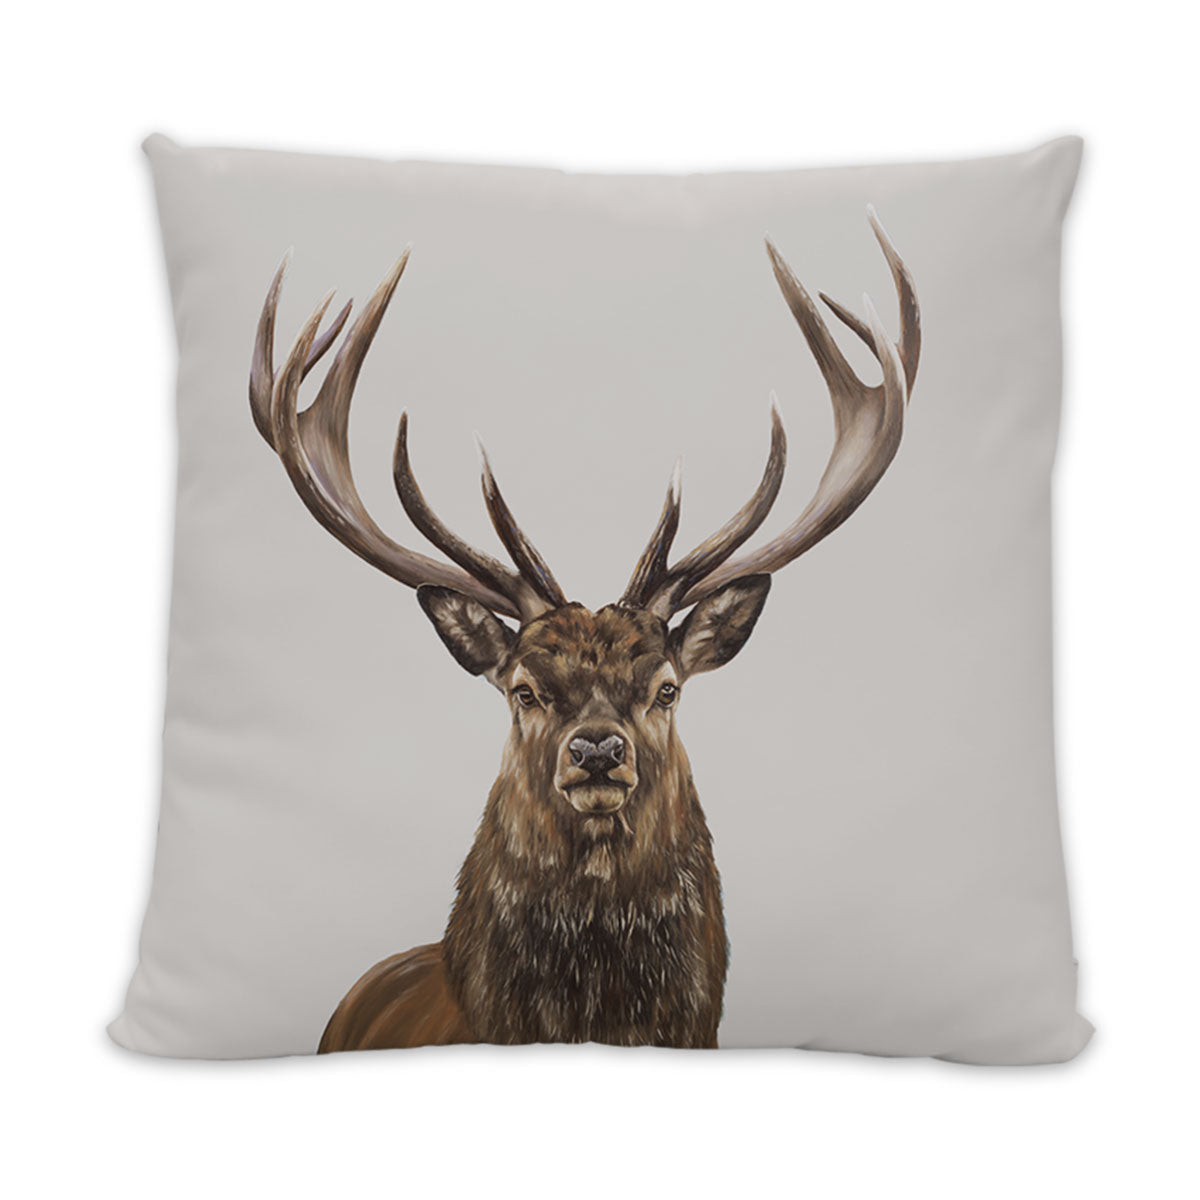 Stag Cushion - Light